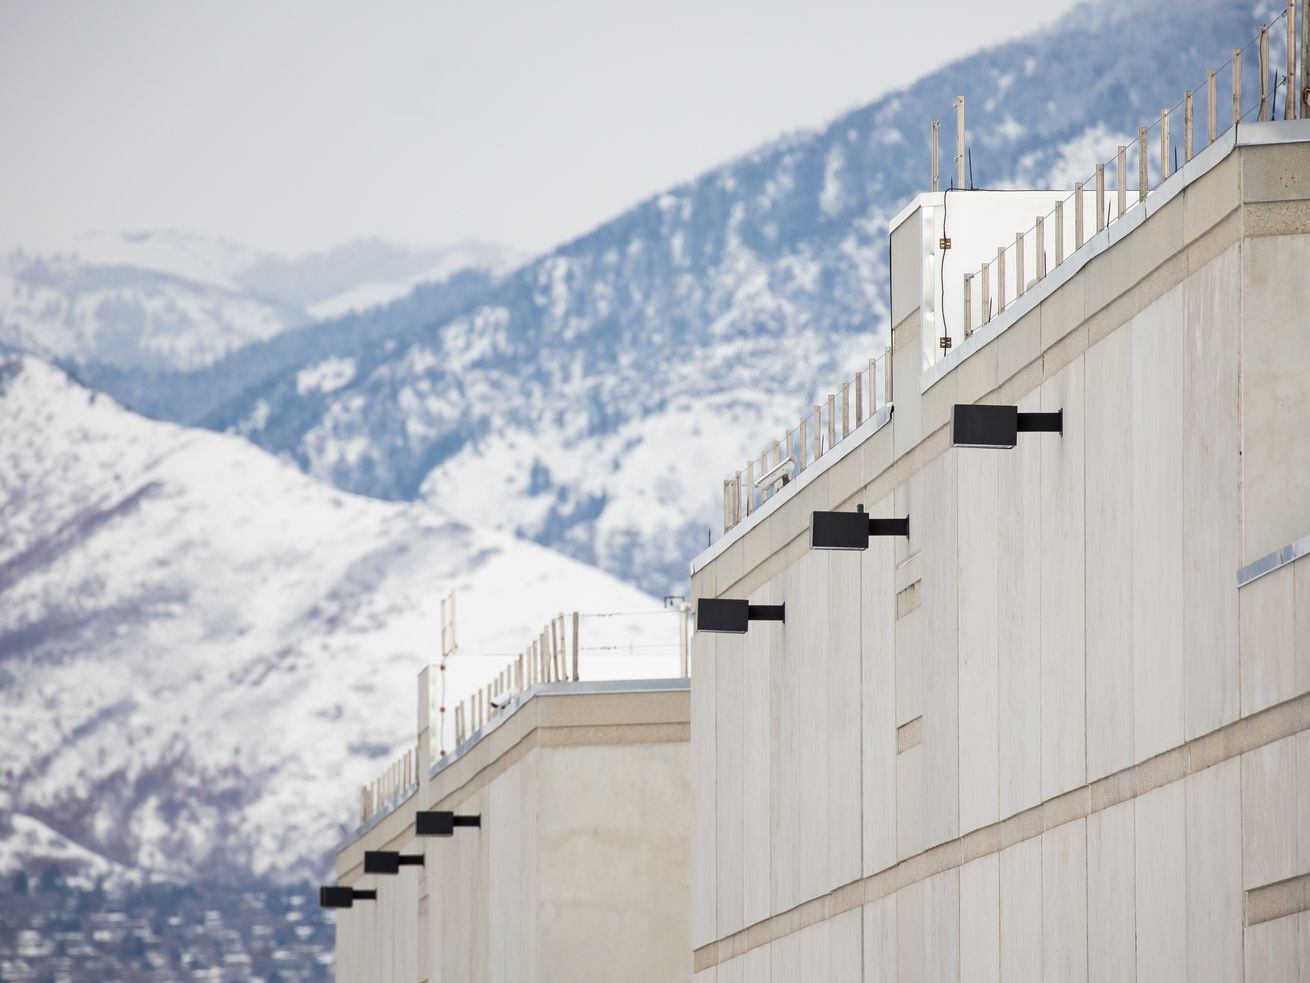 The Salt Lake County Jail in South Salt Lake is pictured on Friday, Feb. 19, 2021.